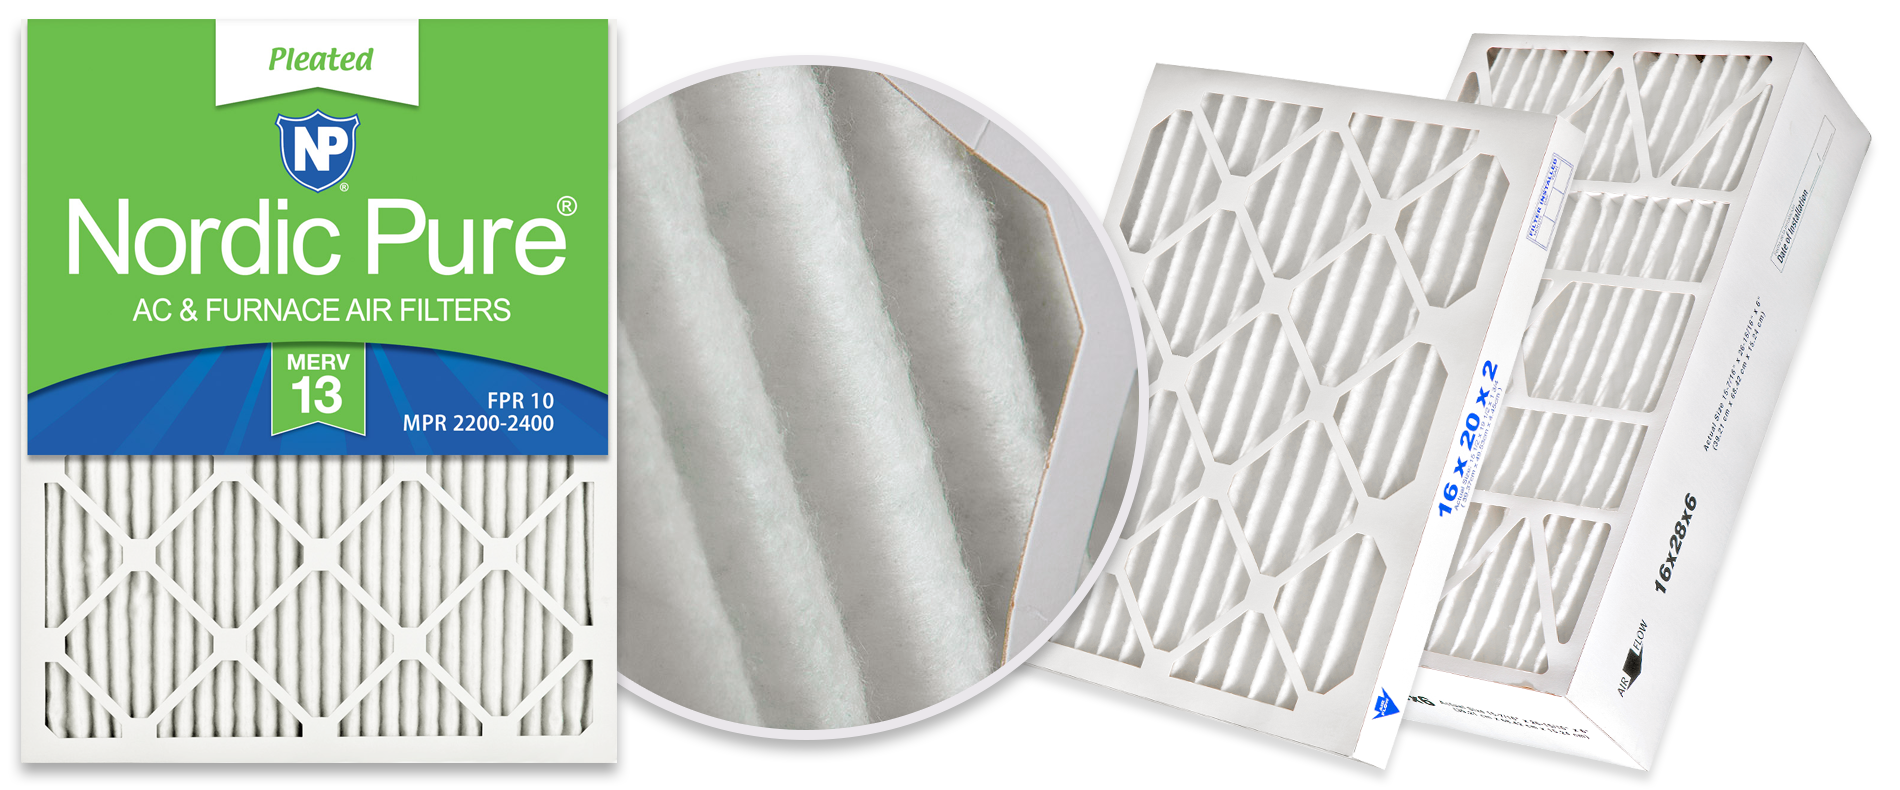 Nordic Pure MERV 13 Pleated Air Filters, Best for Allergies